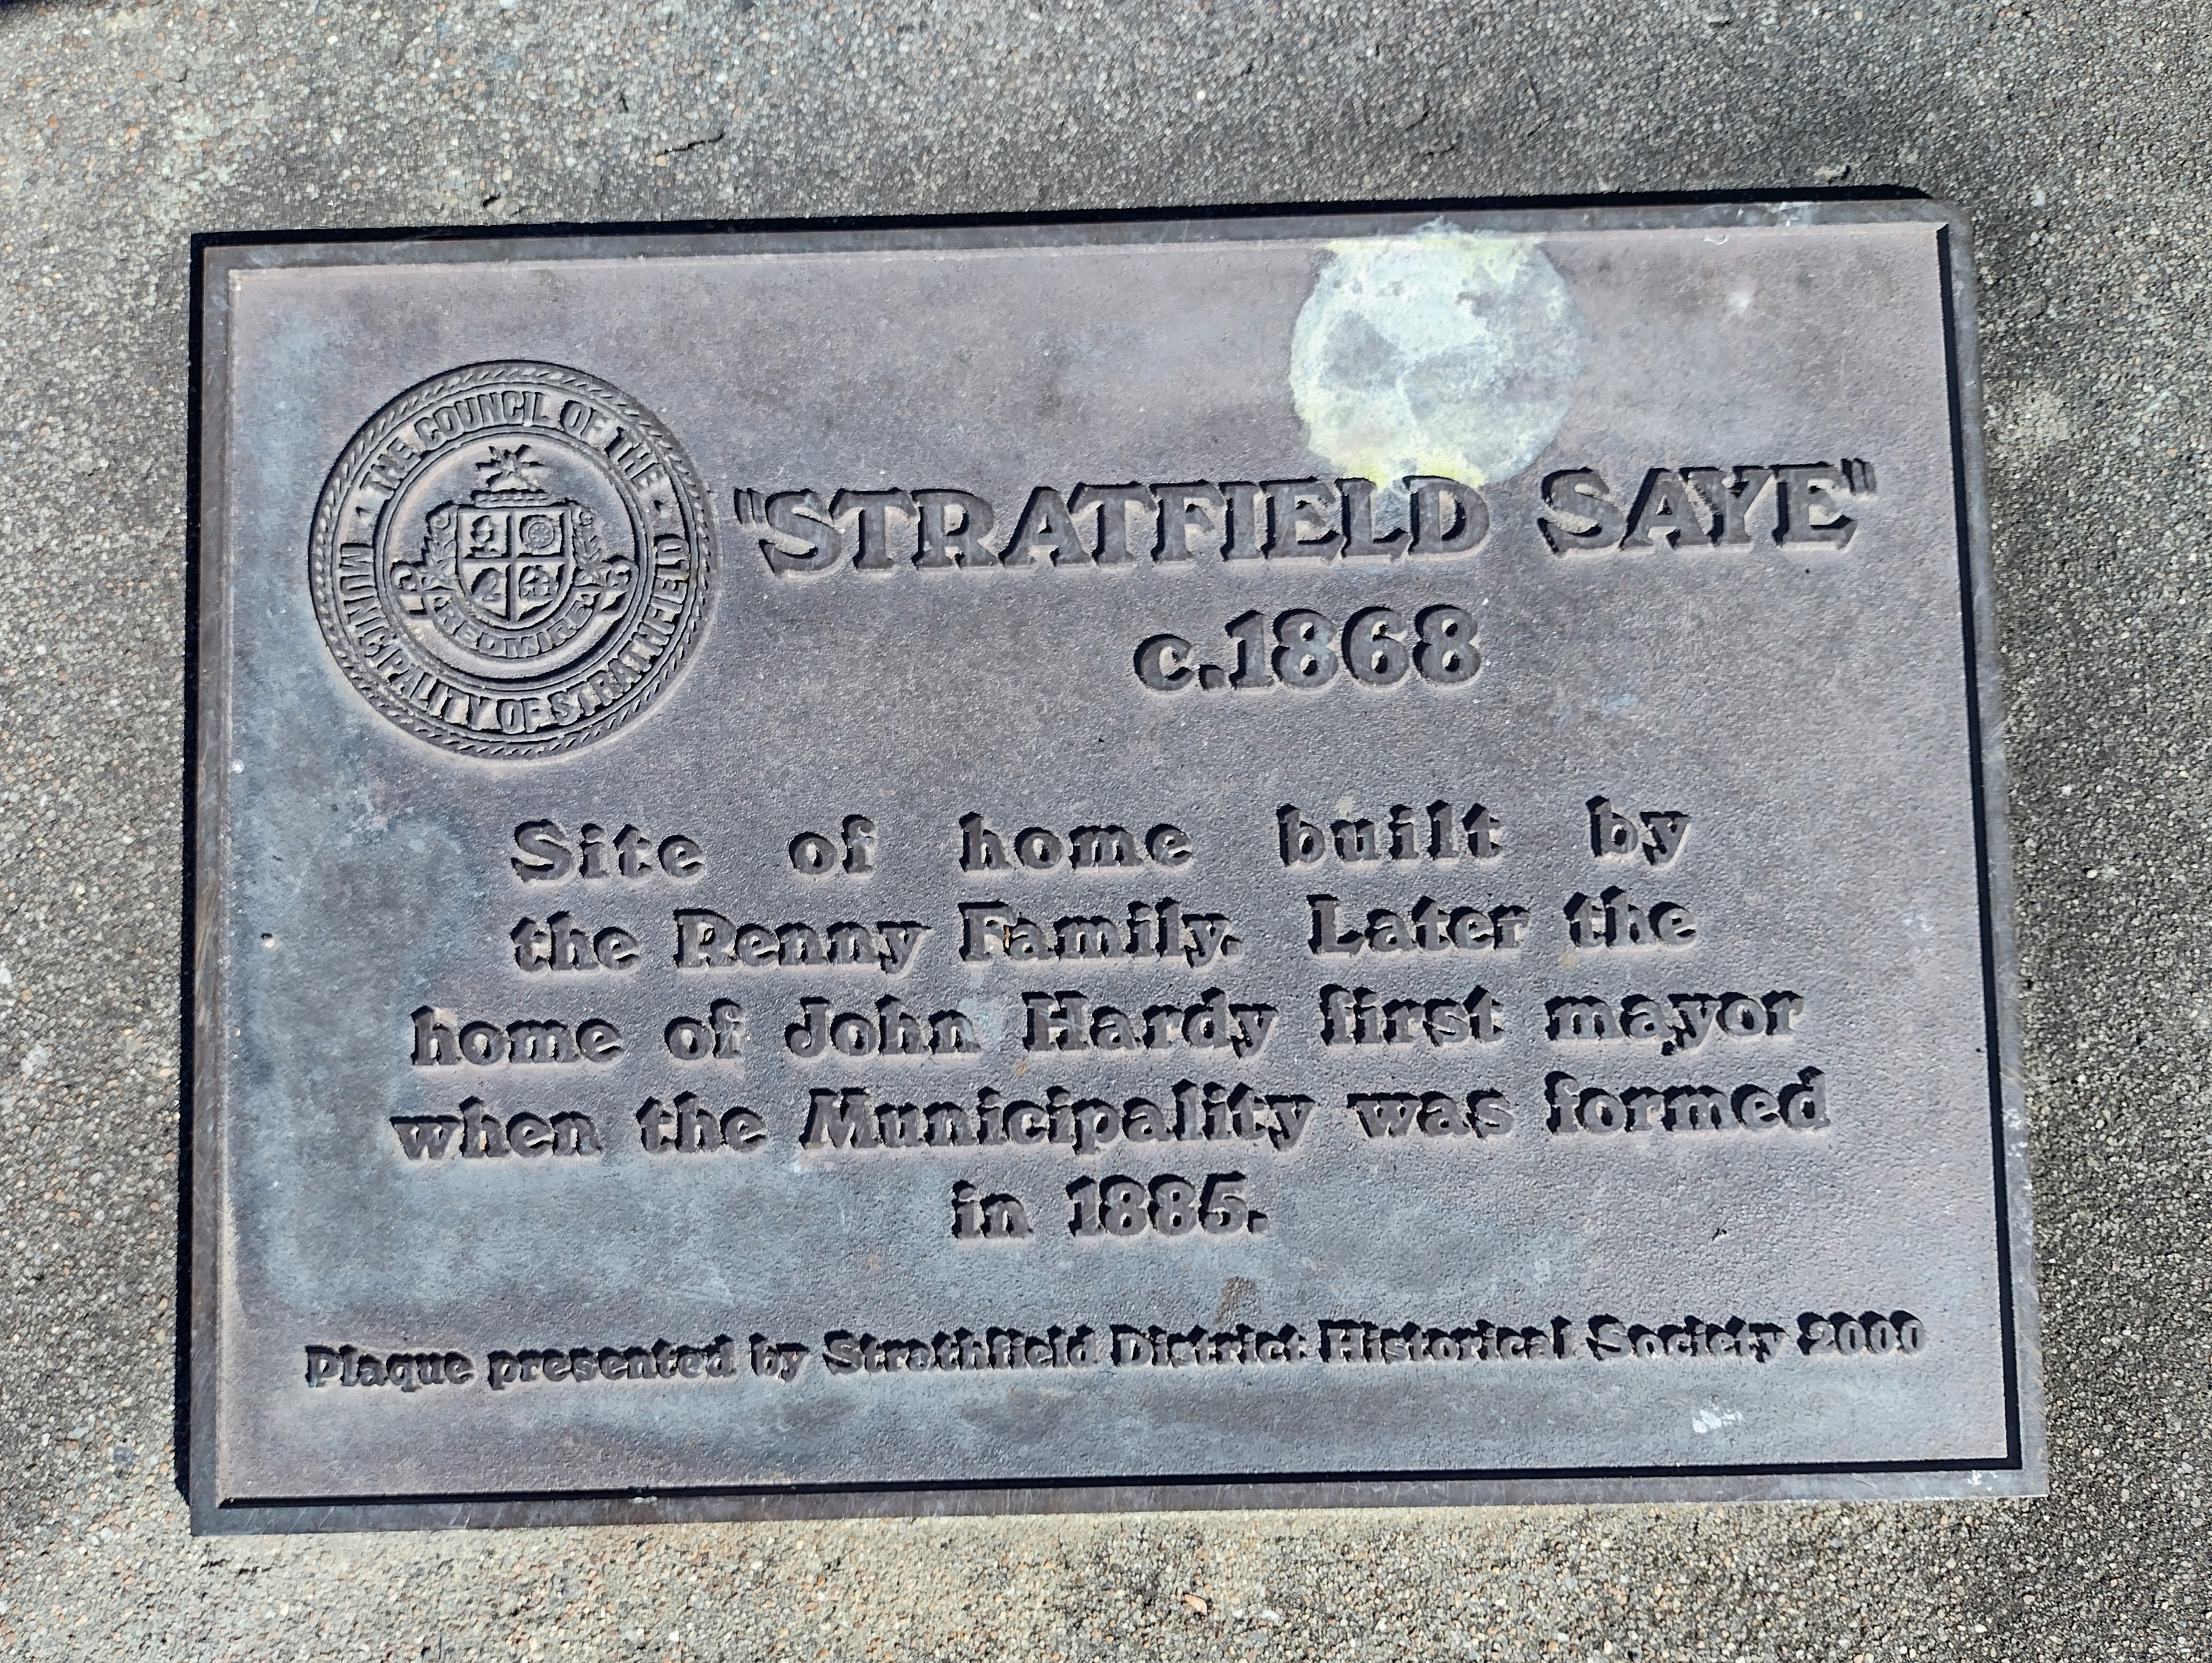 Plaque erected in Strathfield Avenue near the site of the original Strathfield House x.1868. Erected in 2000